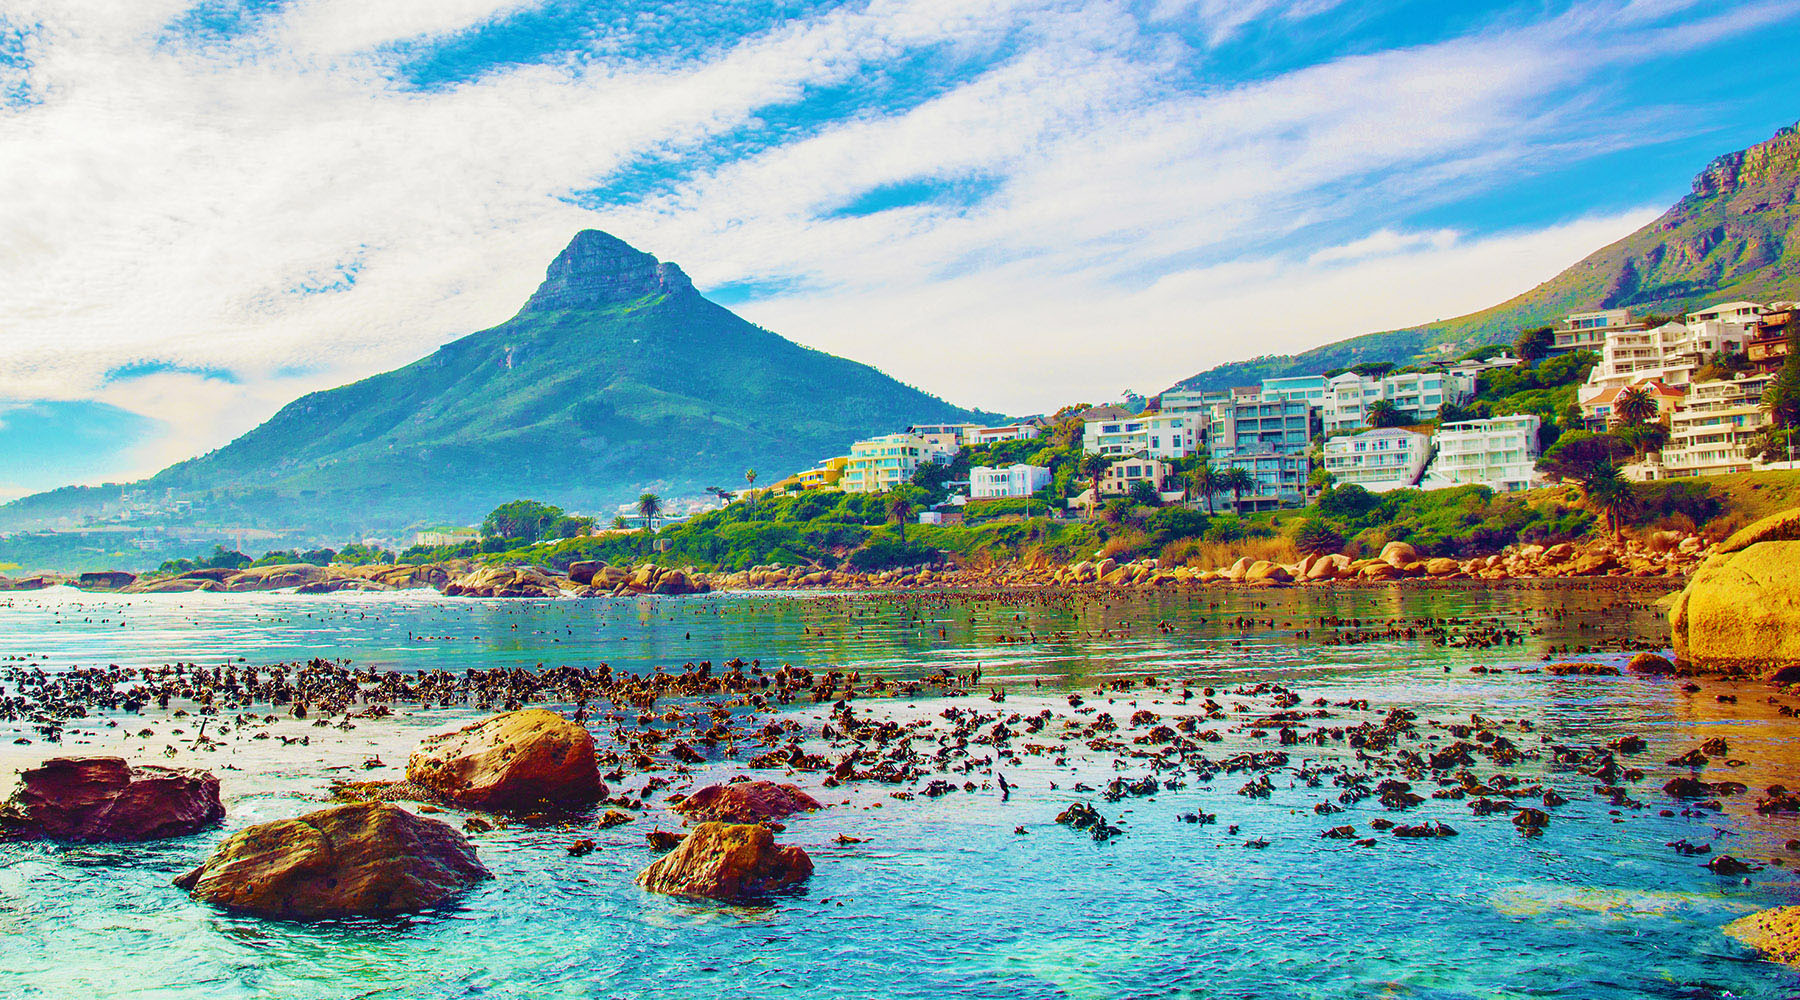 10-Night South Africa Intensive Voyage